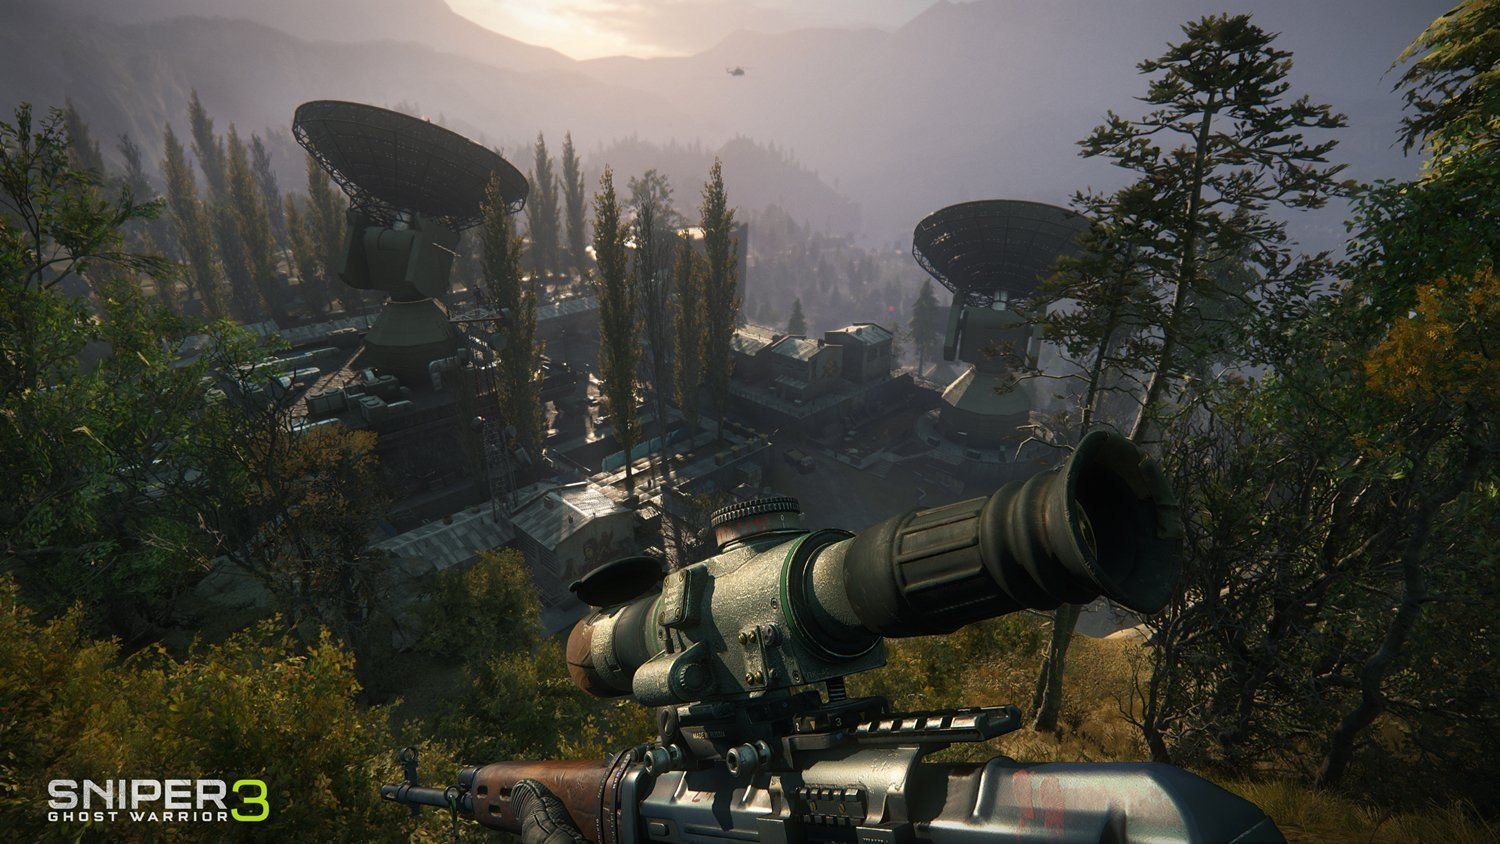 Sniper Ghost Warrior 3 Season Pass Edition Base Game Incl Season Pass Online Game Code Be Sure To Check Out Th Ghost Warrior Sniper Video Game Collection